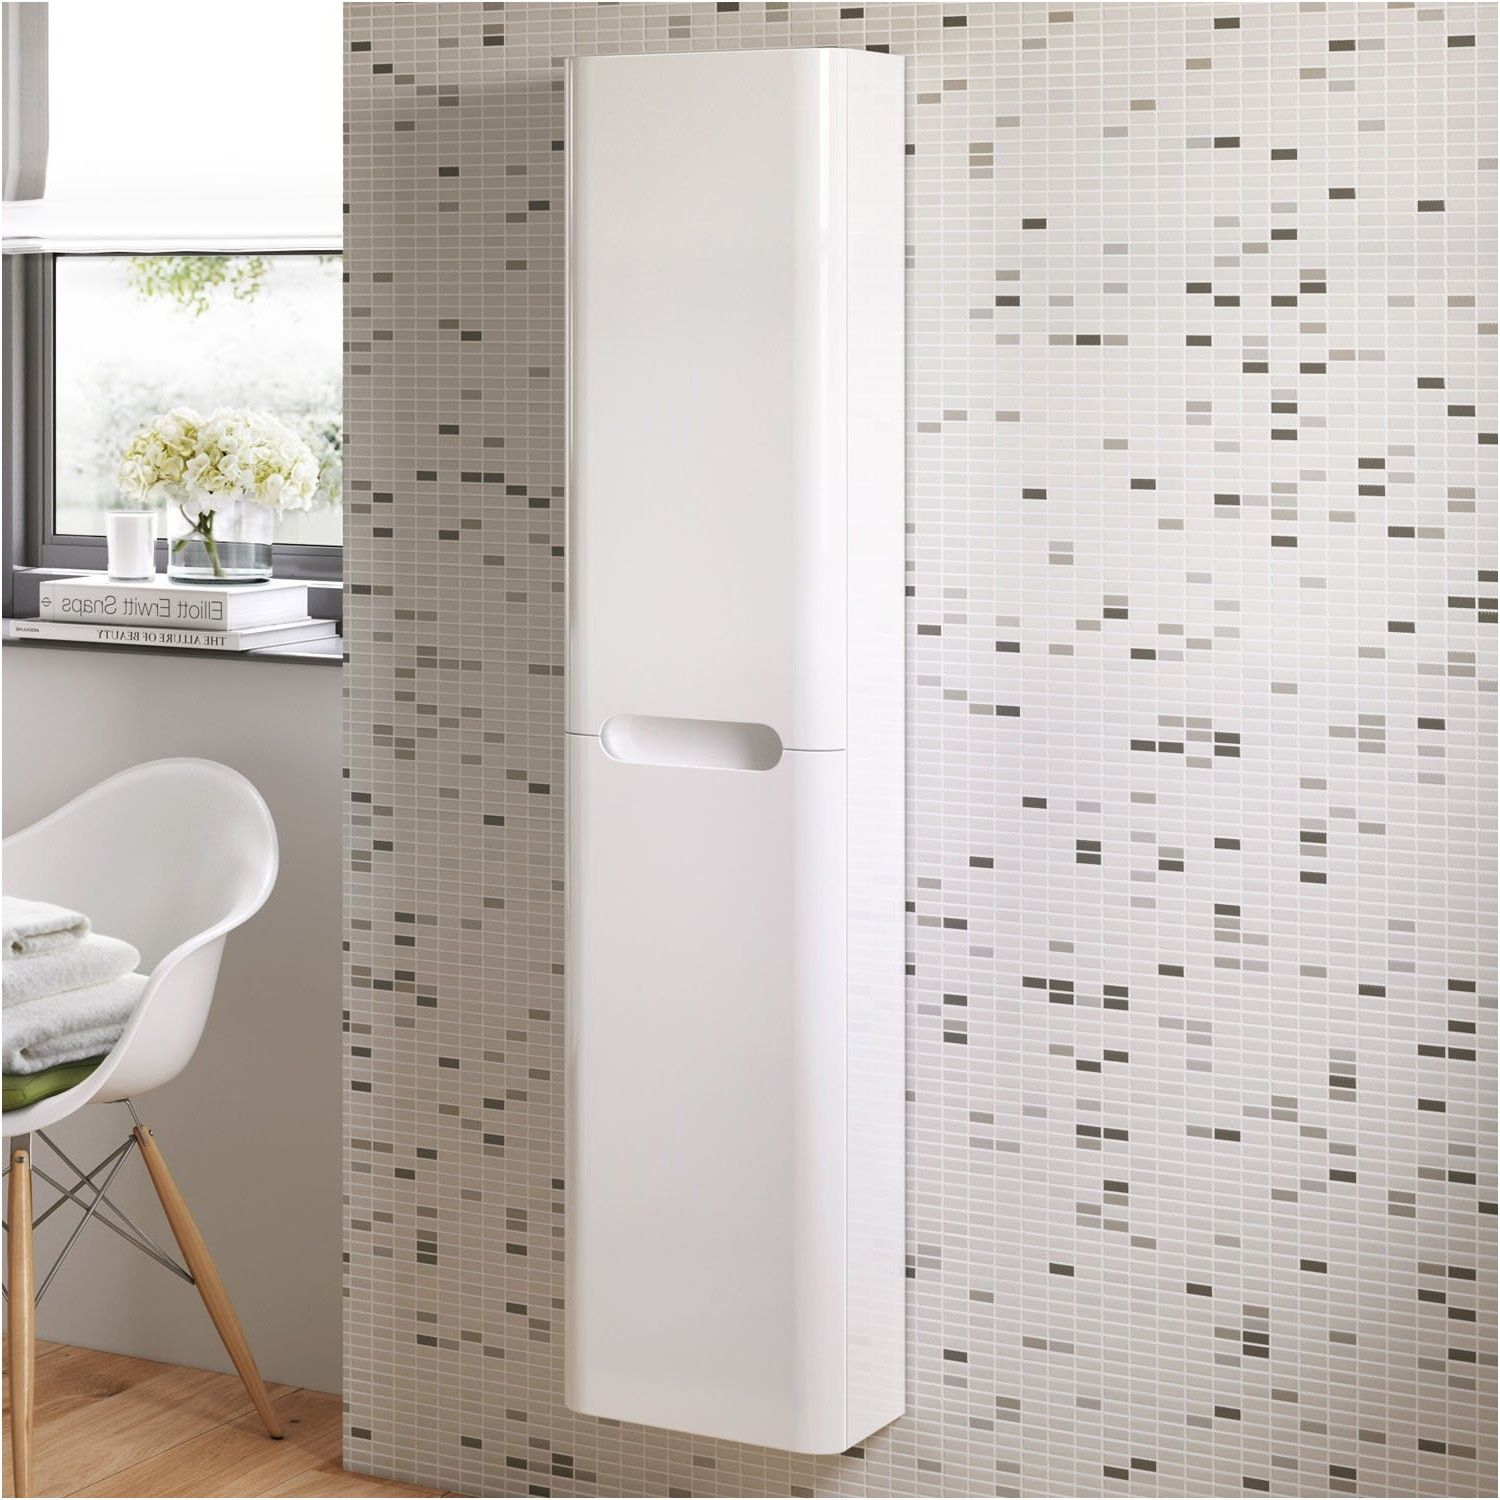 18++ Bathroom storage cabinets for clothes inspiration